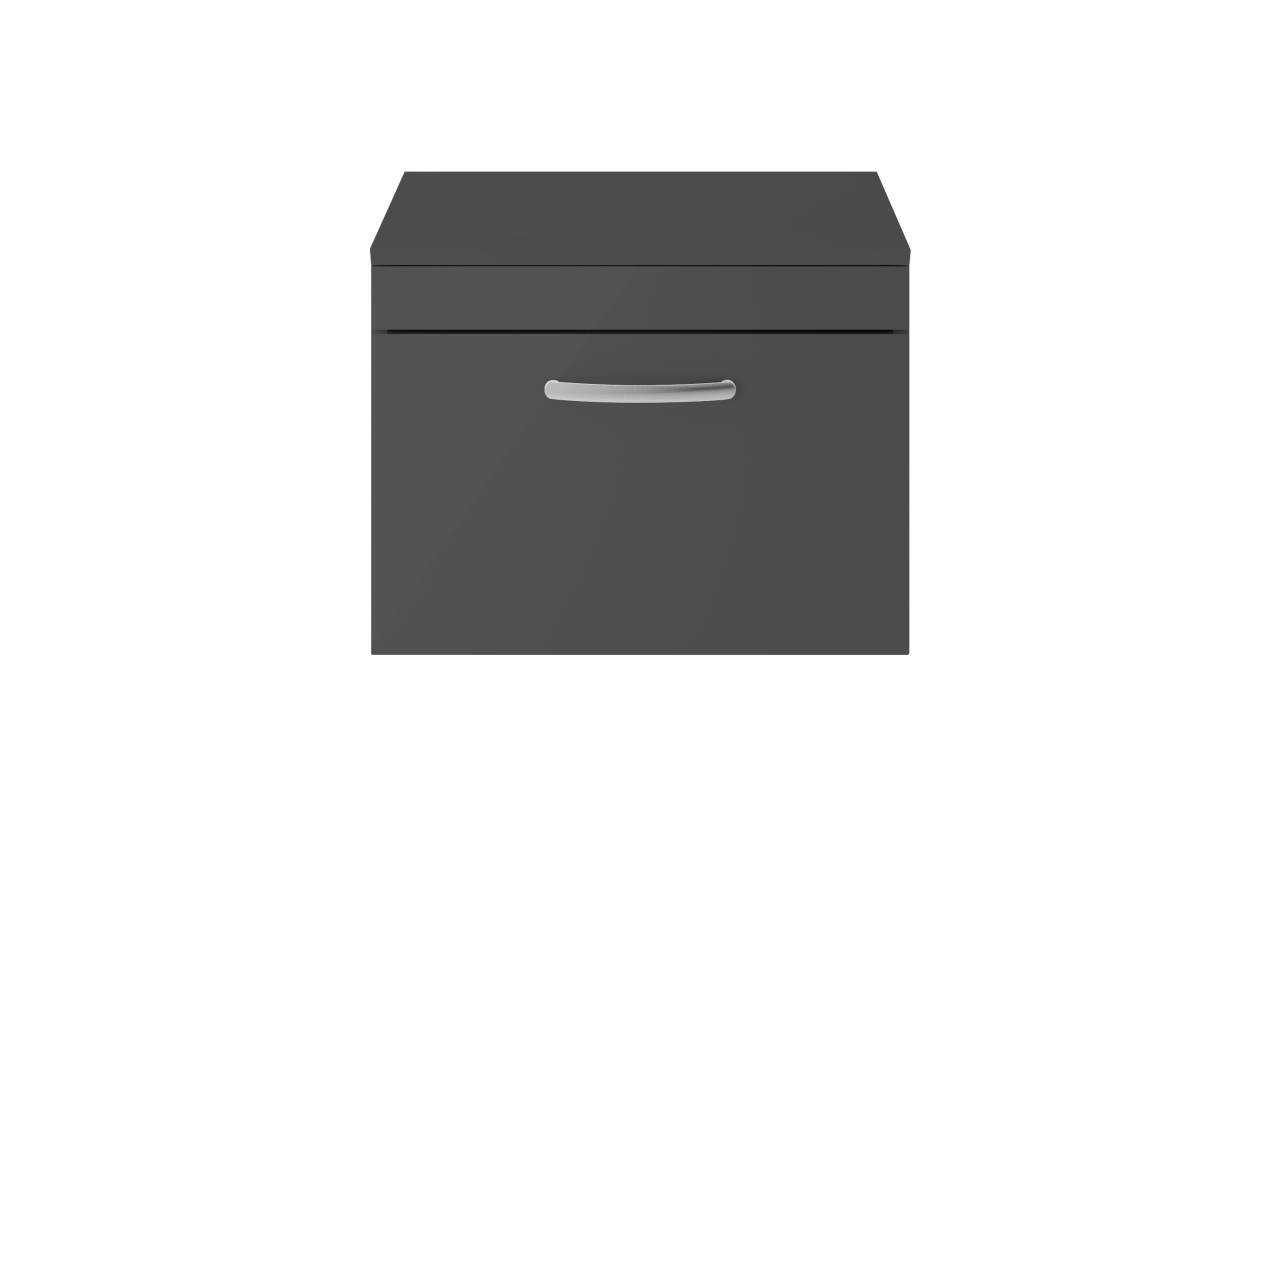 Premier Athena Gloss Grey 600mm Wall Hung Single Drawer Vanity Unit with Worktop - ATH077W